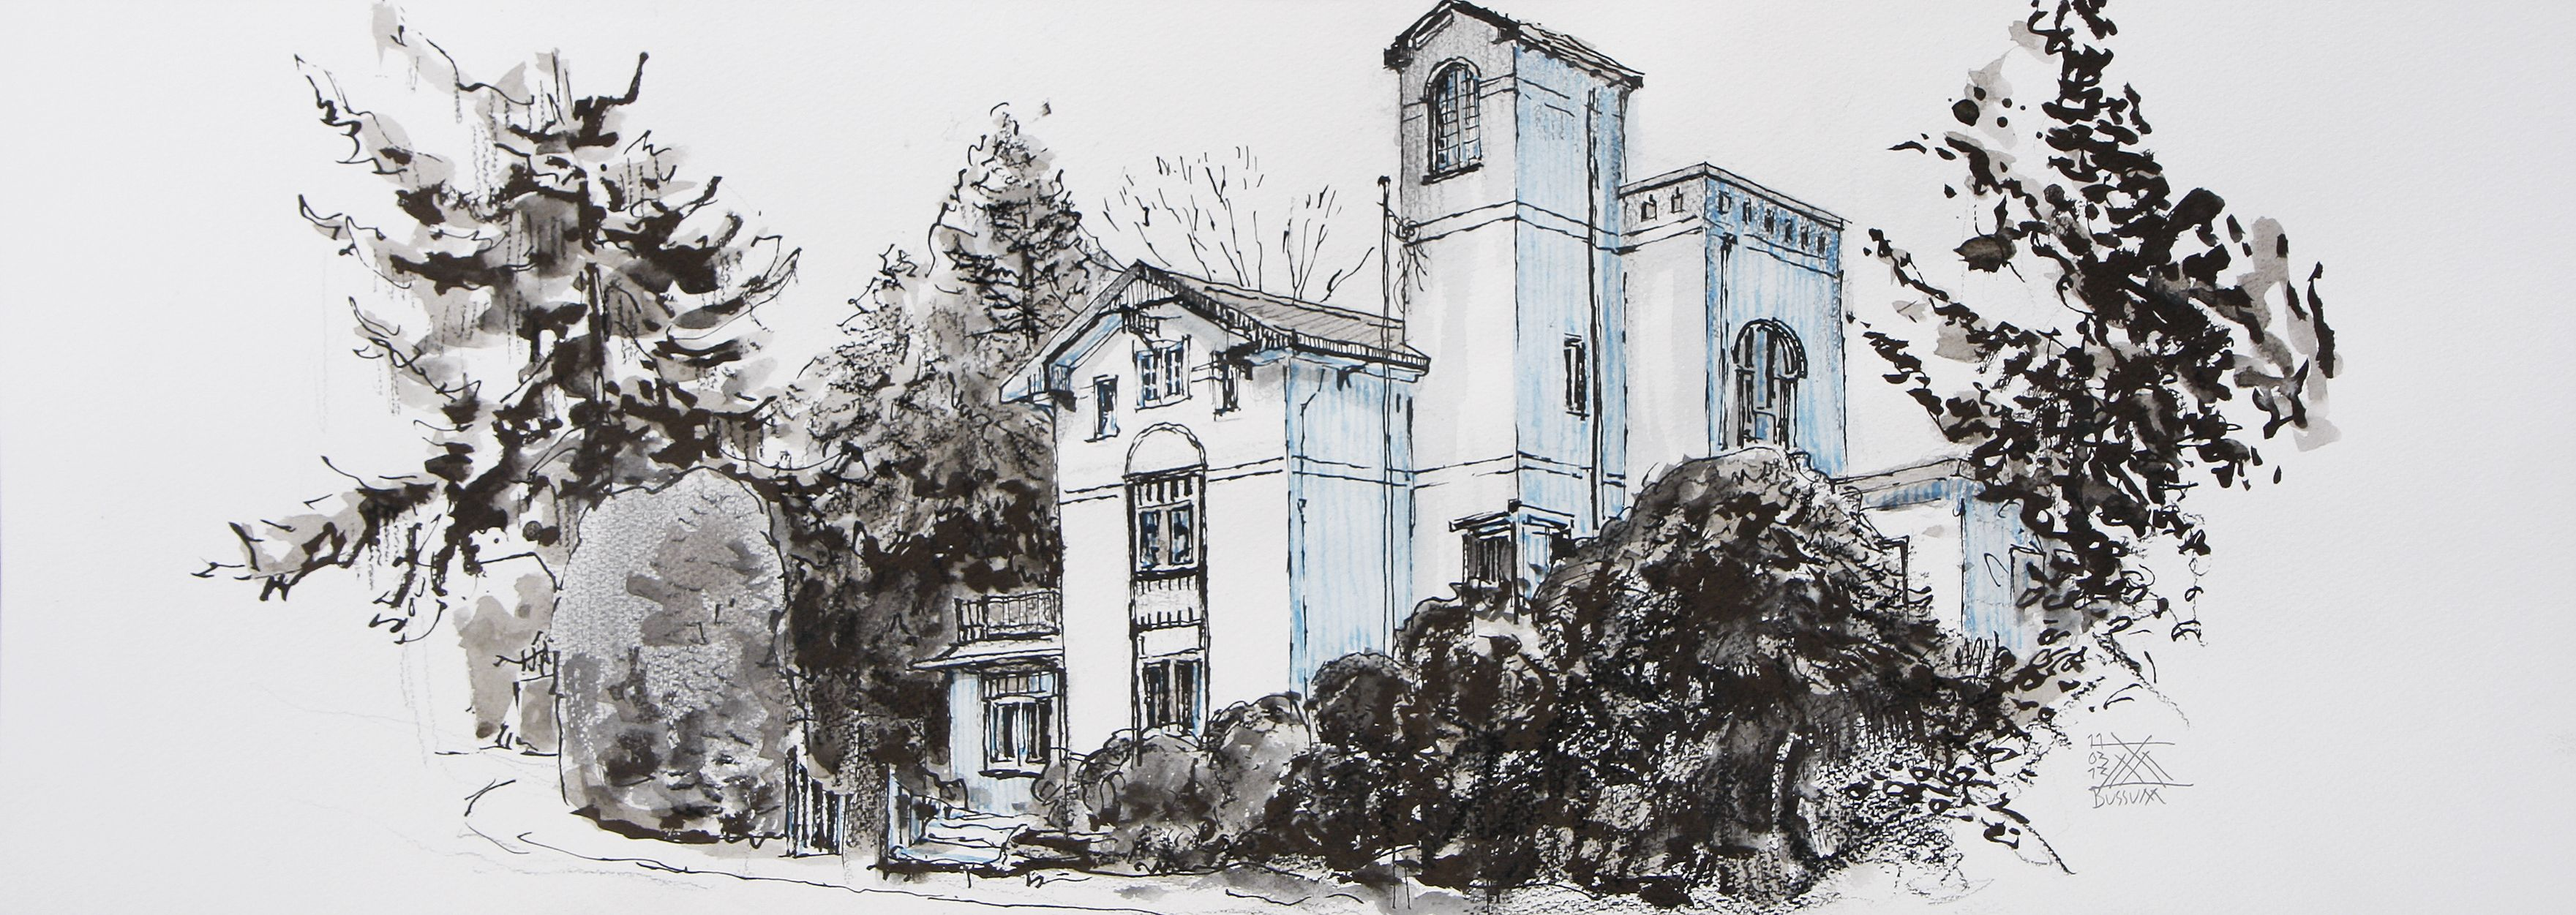 Villa in Bussum, the Netherlands. Lex Hamers. Drawing on paper. 70 x 25 cm. 11/03/2013